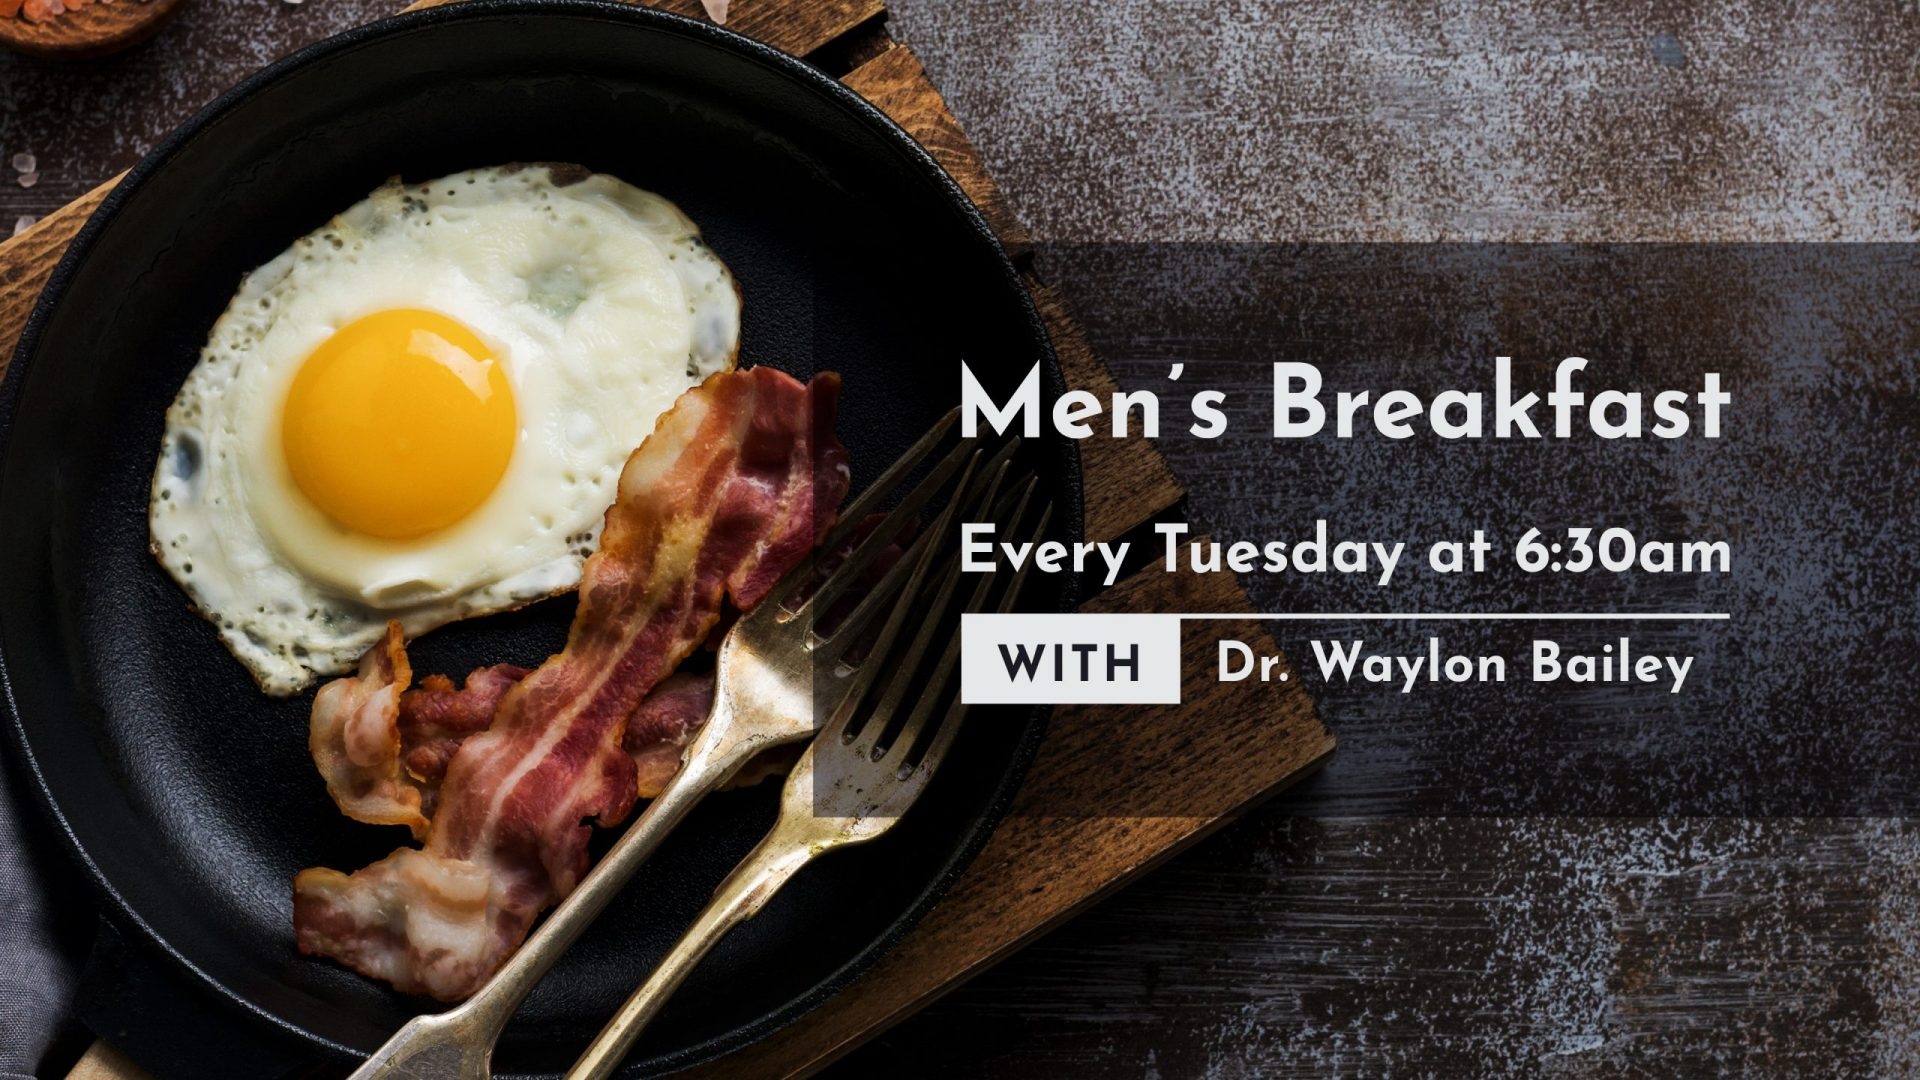 Join us every Tuesday Morning at 6:30am in the Fellowship Hall